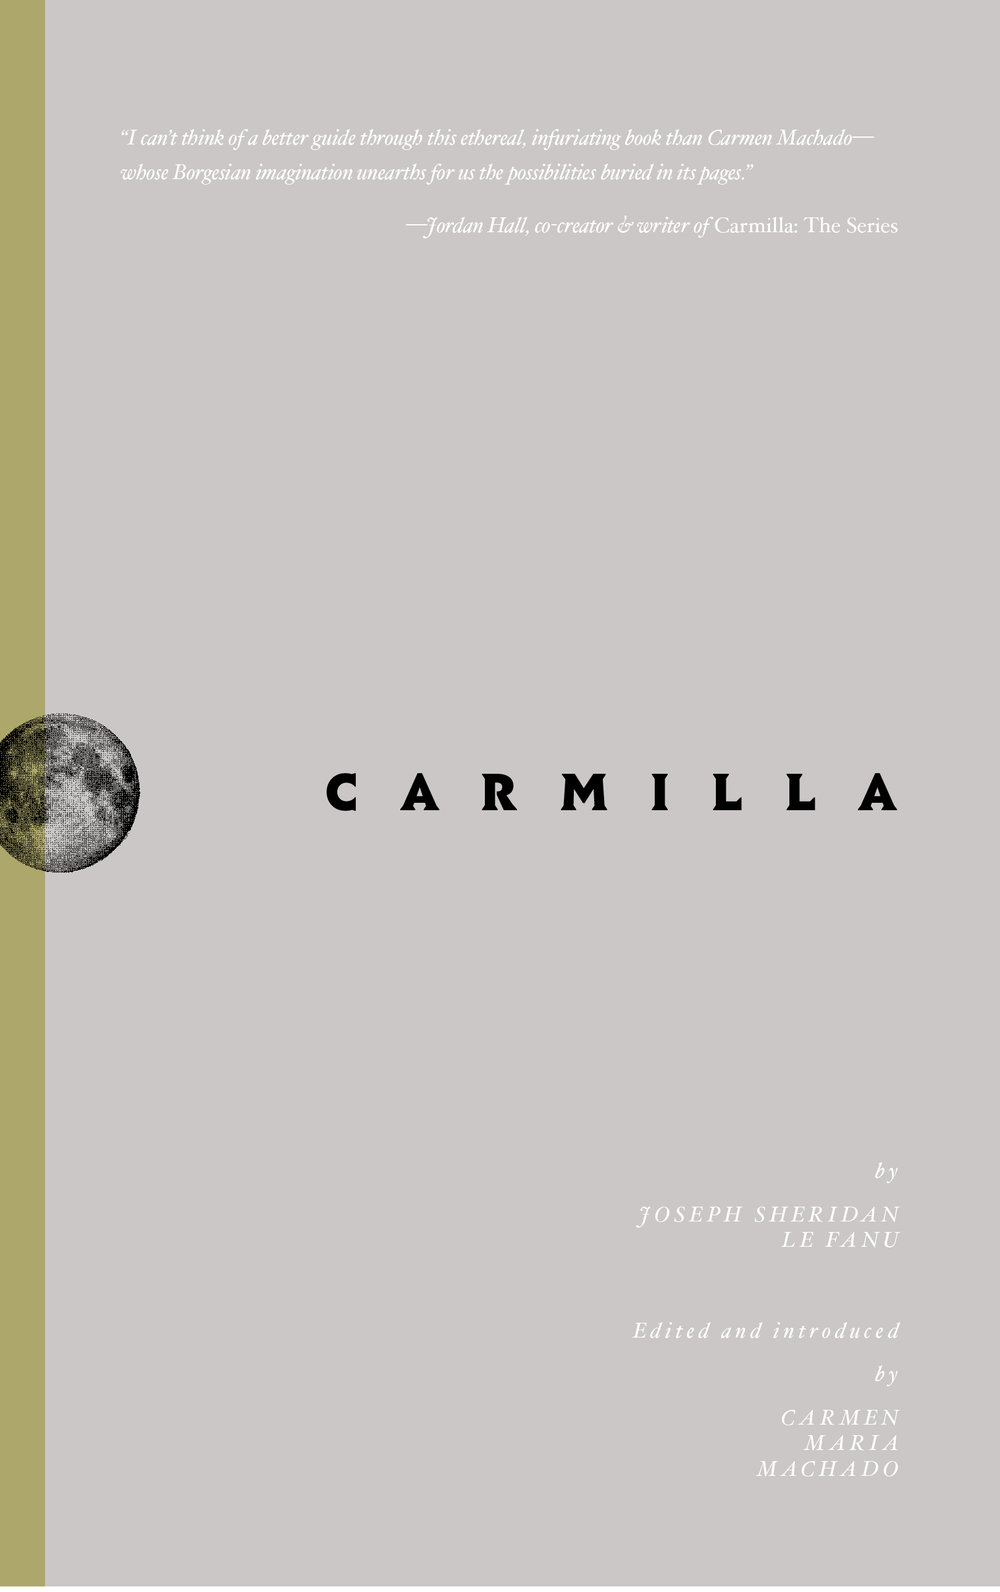 CARMILLA-kindle-EPUB-cover.jpg